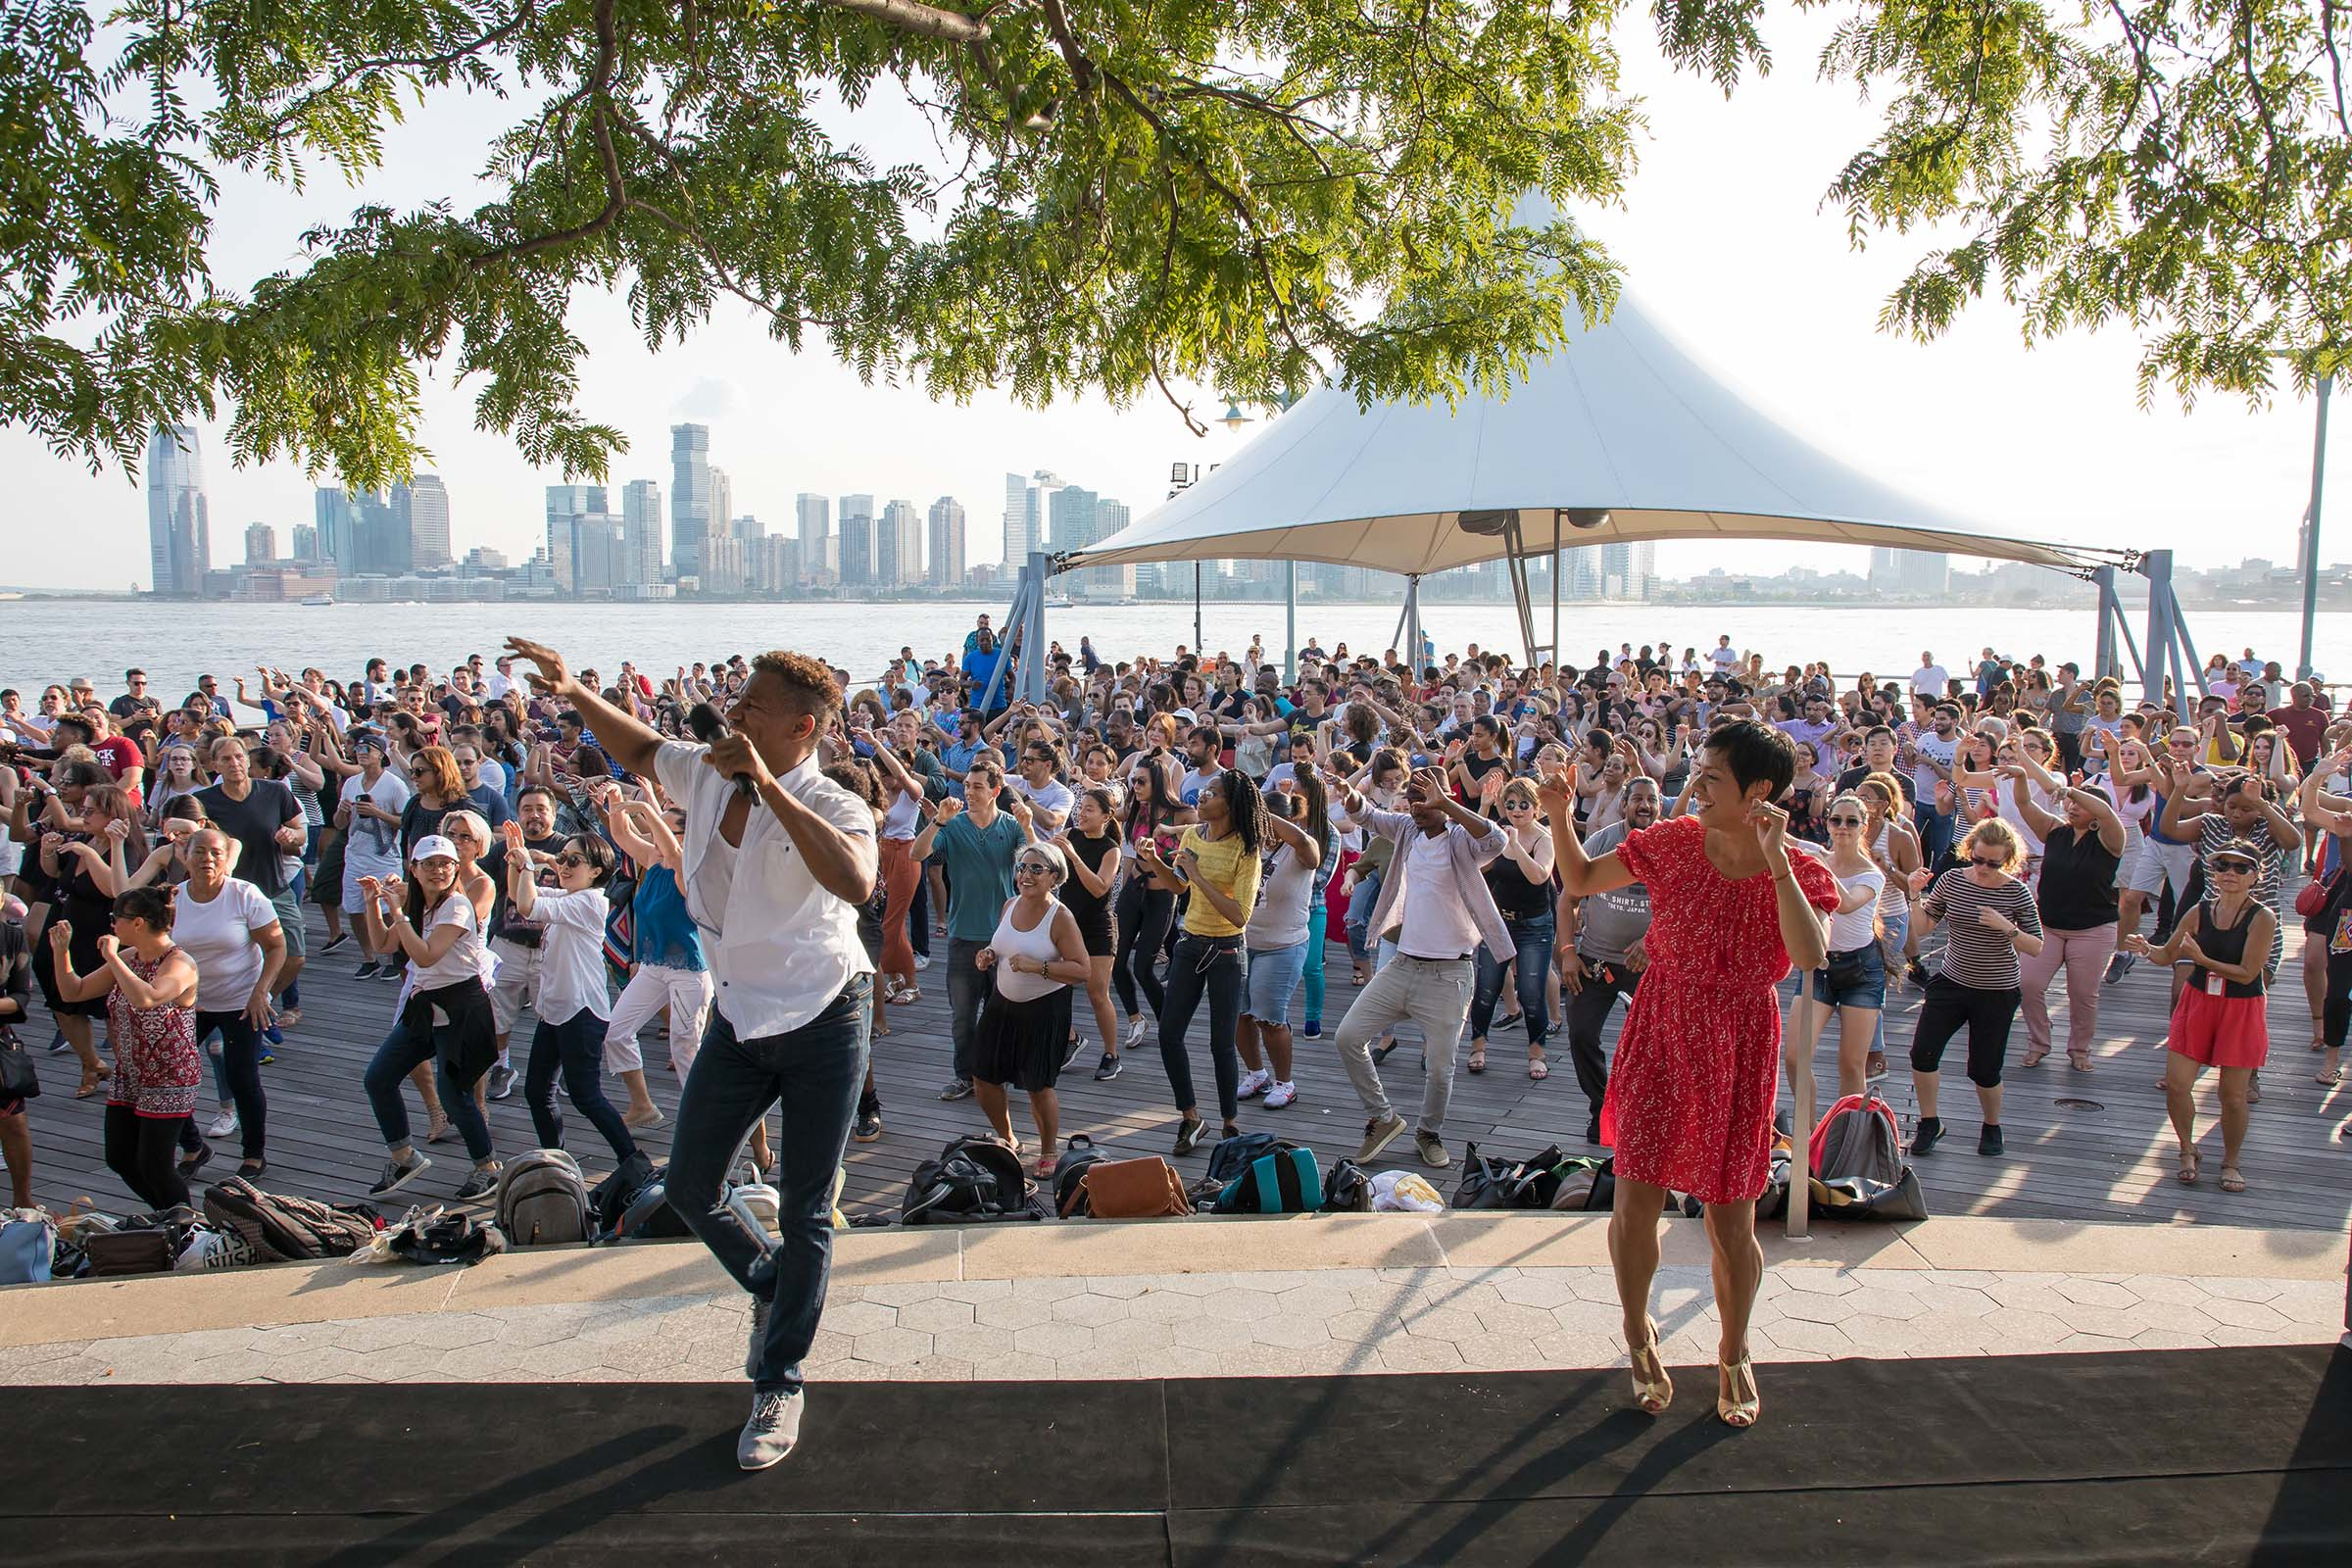 Talia teaches a group of Park visitors how to salsa at Pier 45